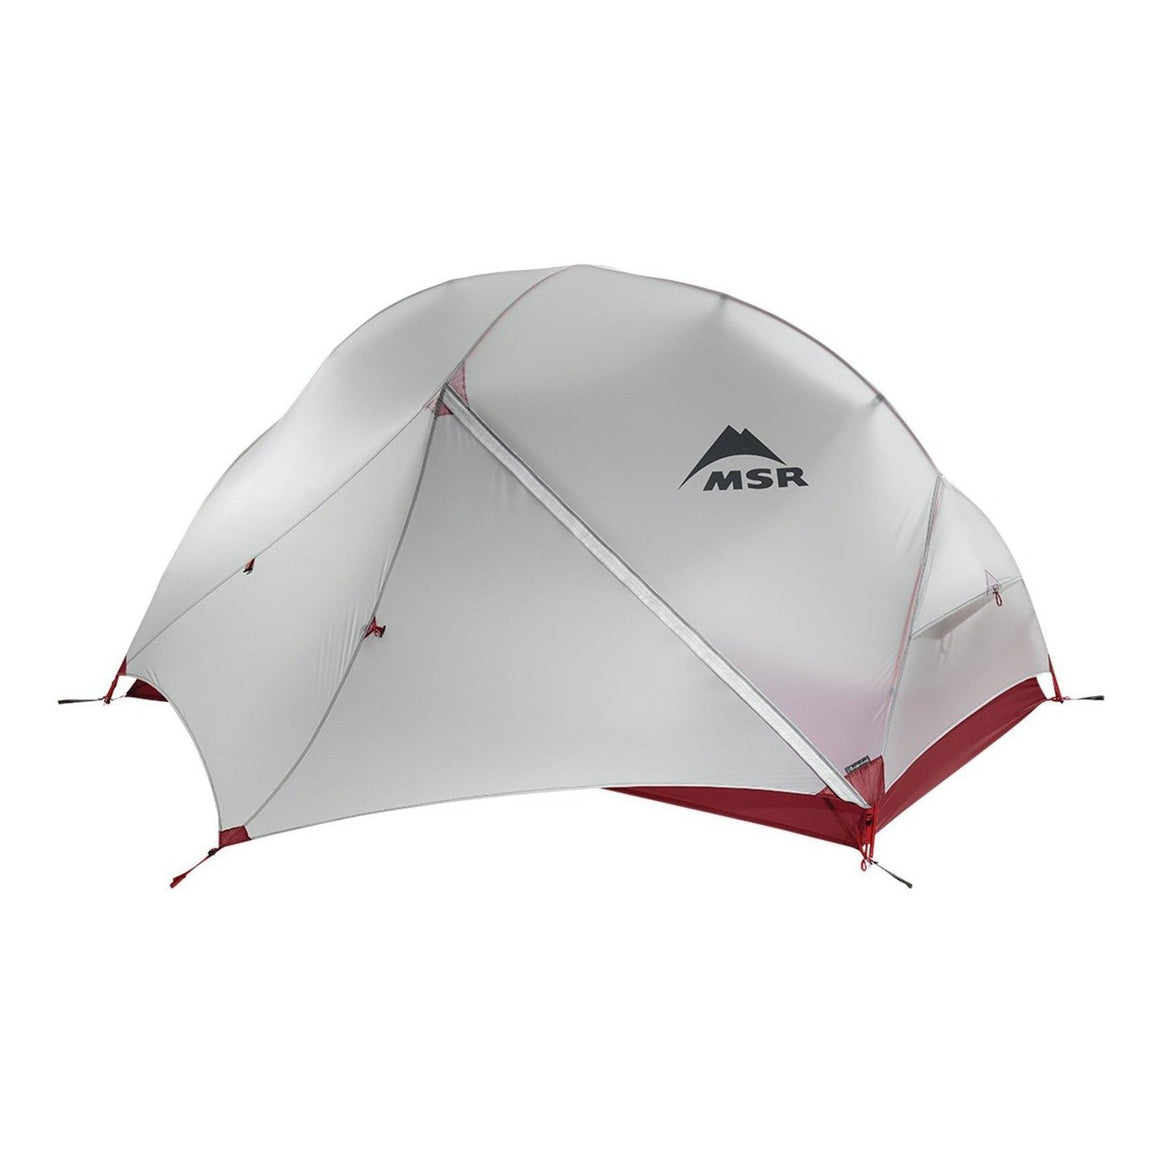 MSR Hubba Hubba NX Lightweight 2-Person Tent